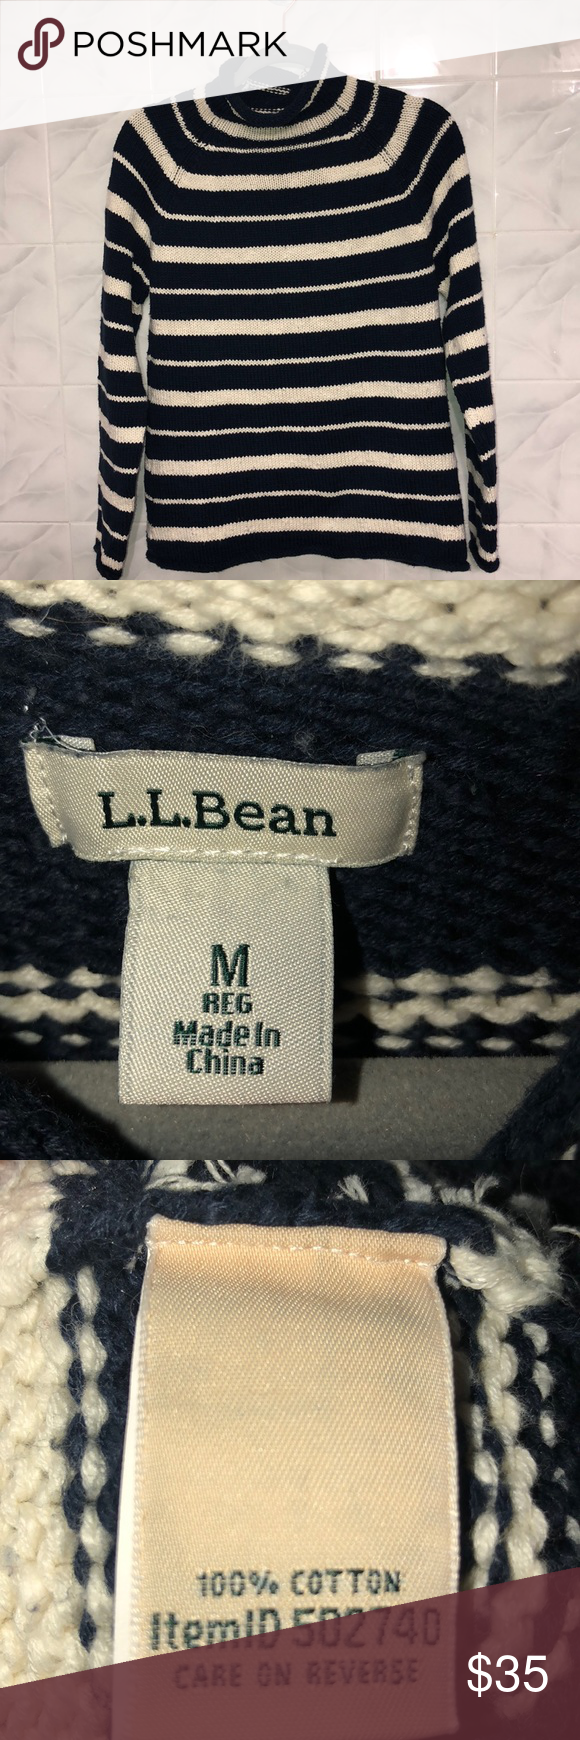 L.L.Bean Women's Cottage Cotton Sweater, Funnelneck